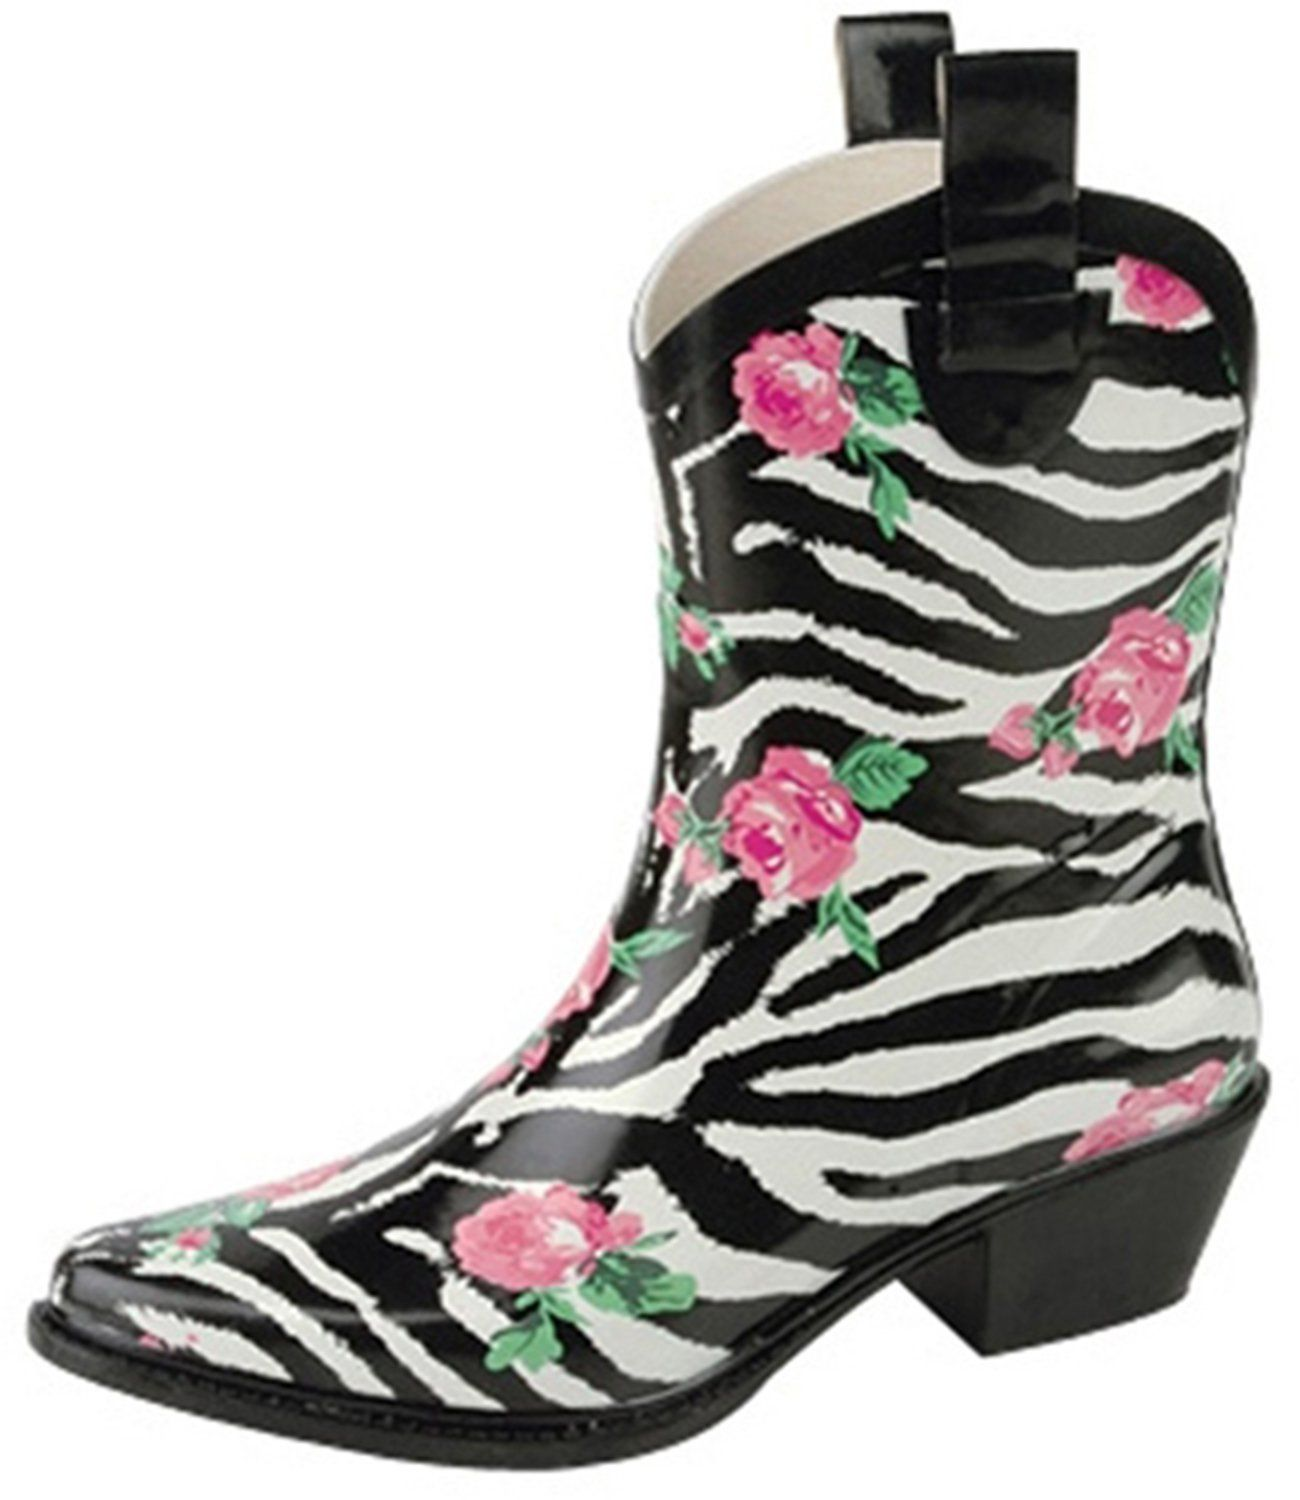 Women's Nature Breeze Cb Rain-21 Ankle Rose Prints Rain Boots Fashion Shoes *** Find out more about the great product at the image link.